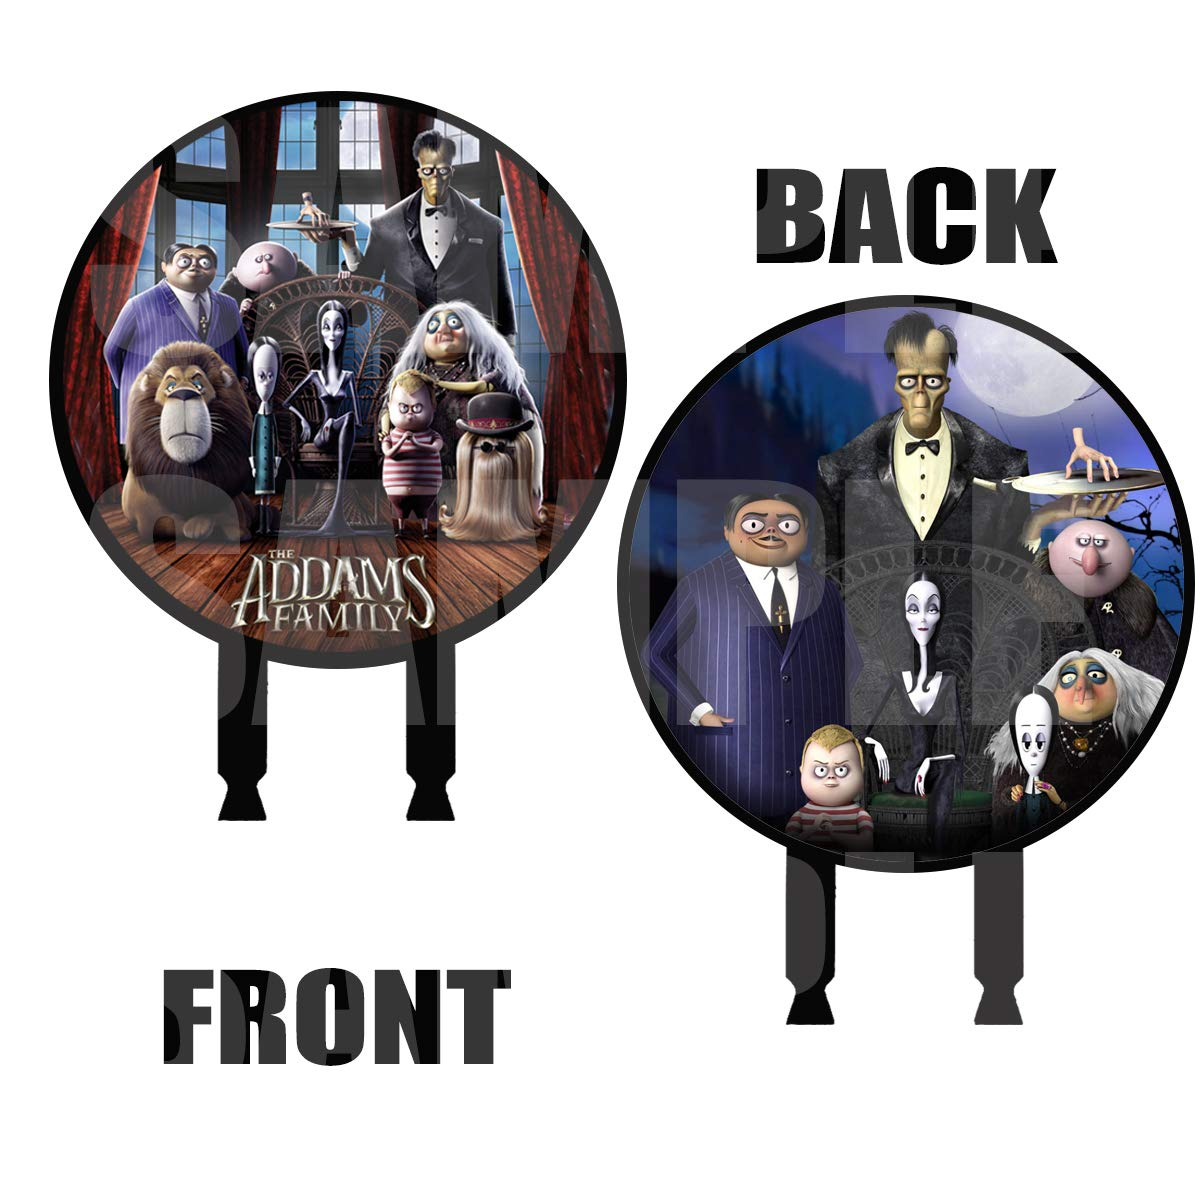 Addams Family Movie Cake Topper, 6 inch Round Circle 2 Sided Centerpiece Different Images Movie, 1 pc, Halloween Cousin IT, Wednesday, Morticia, Gomez, Thing Hand, Pugsley, Margaret by Party Over Here